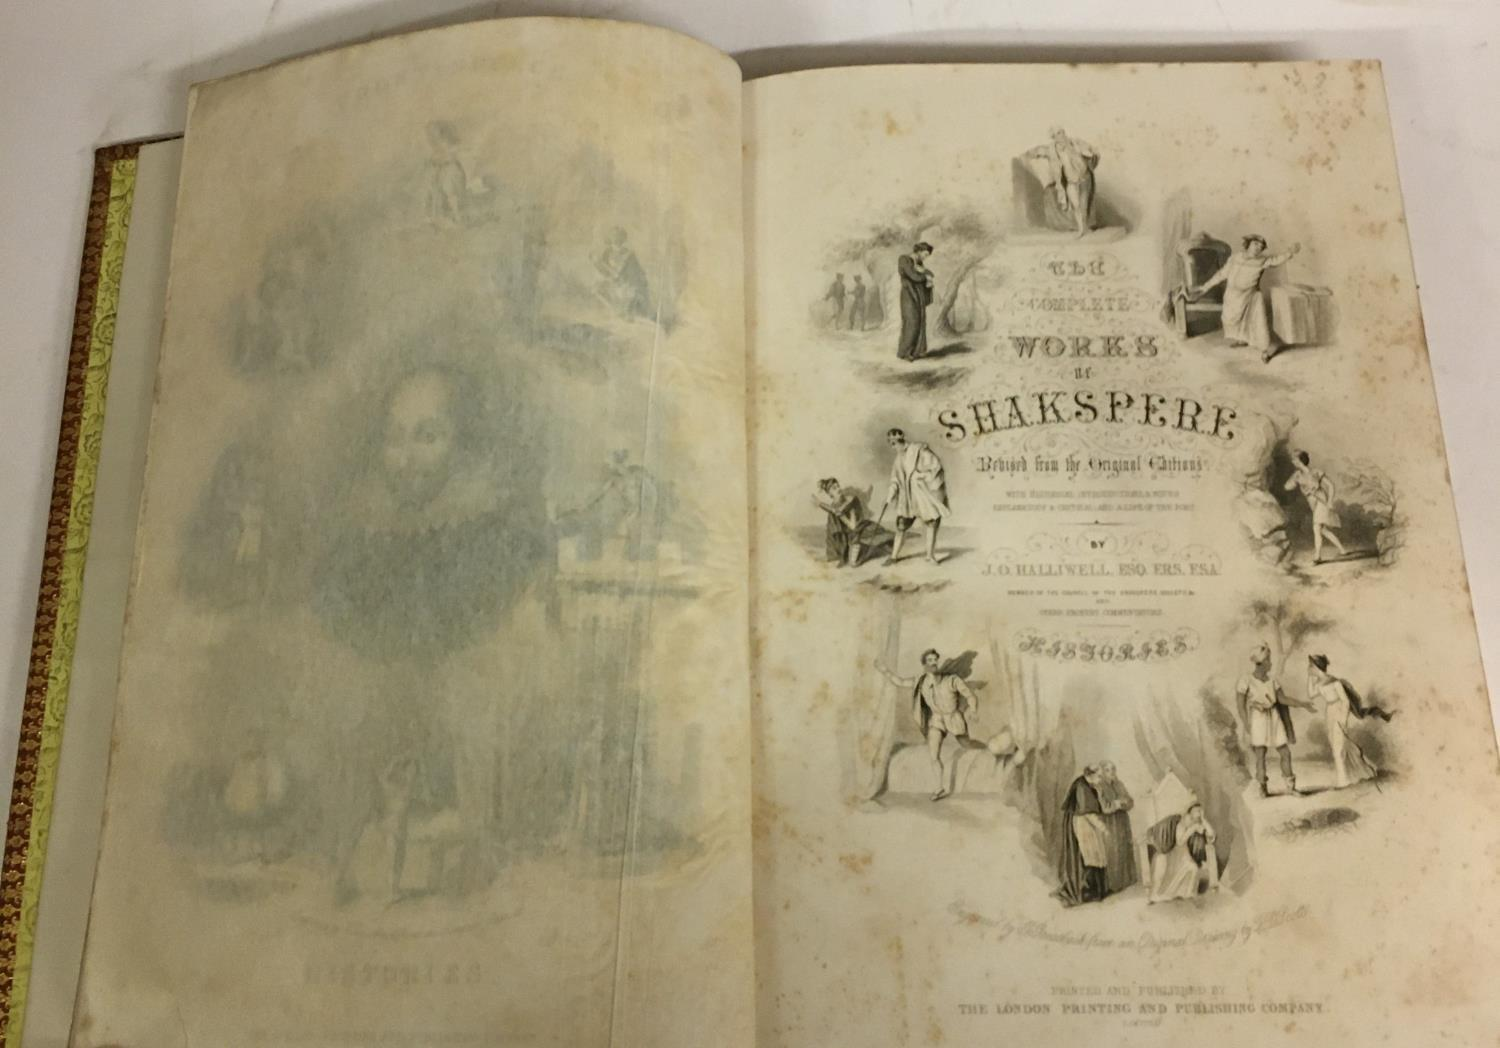 Shakespeare, William. The Complete Works, 3 volumes, plates, contemporary full morocco, decorated